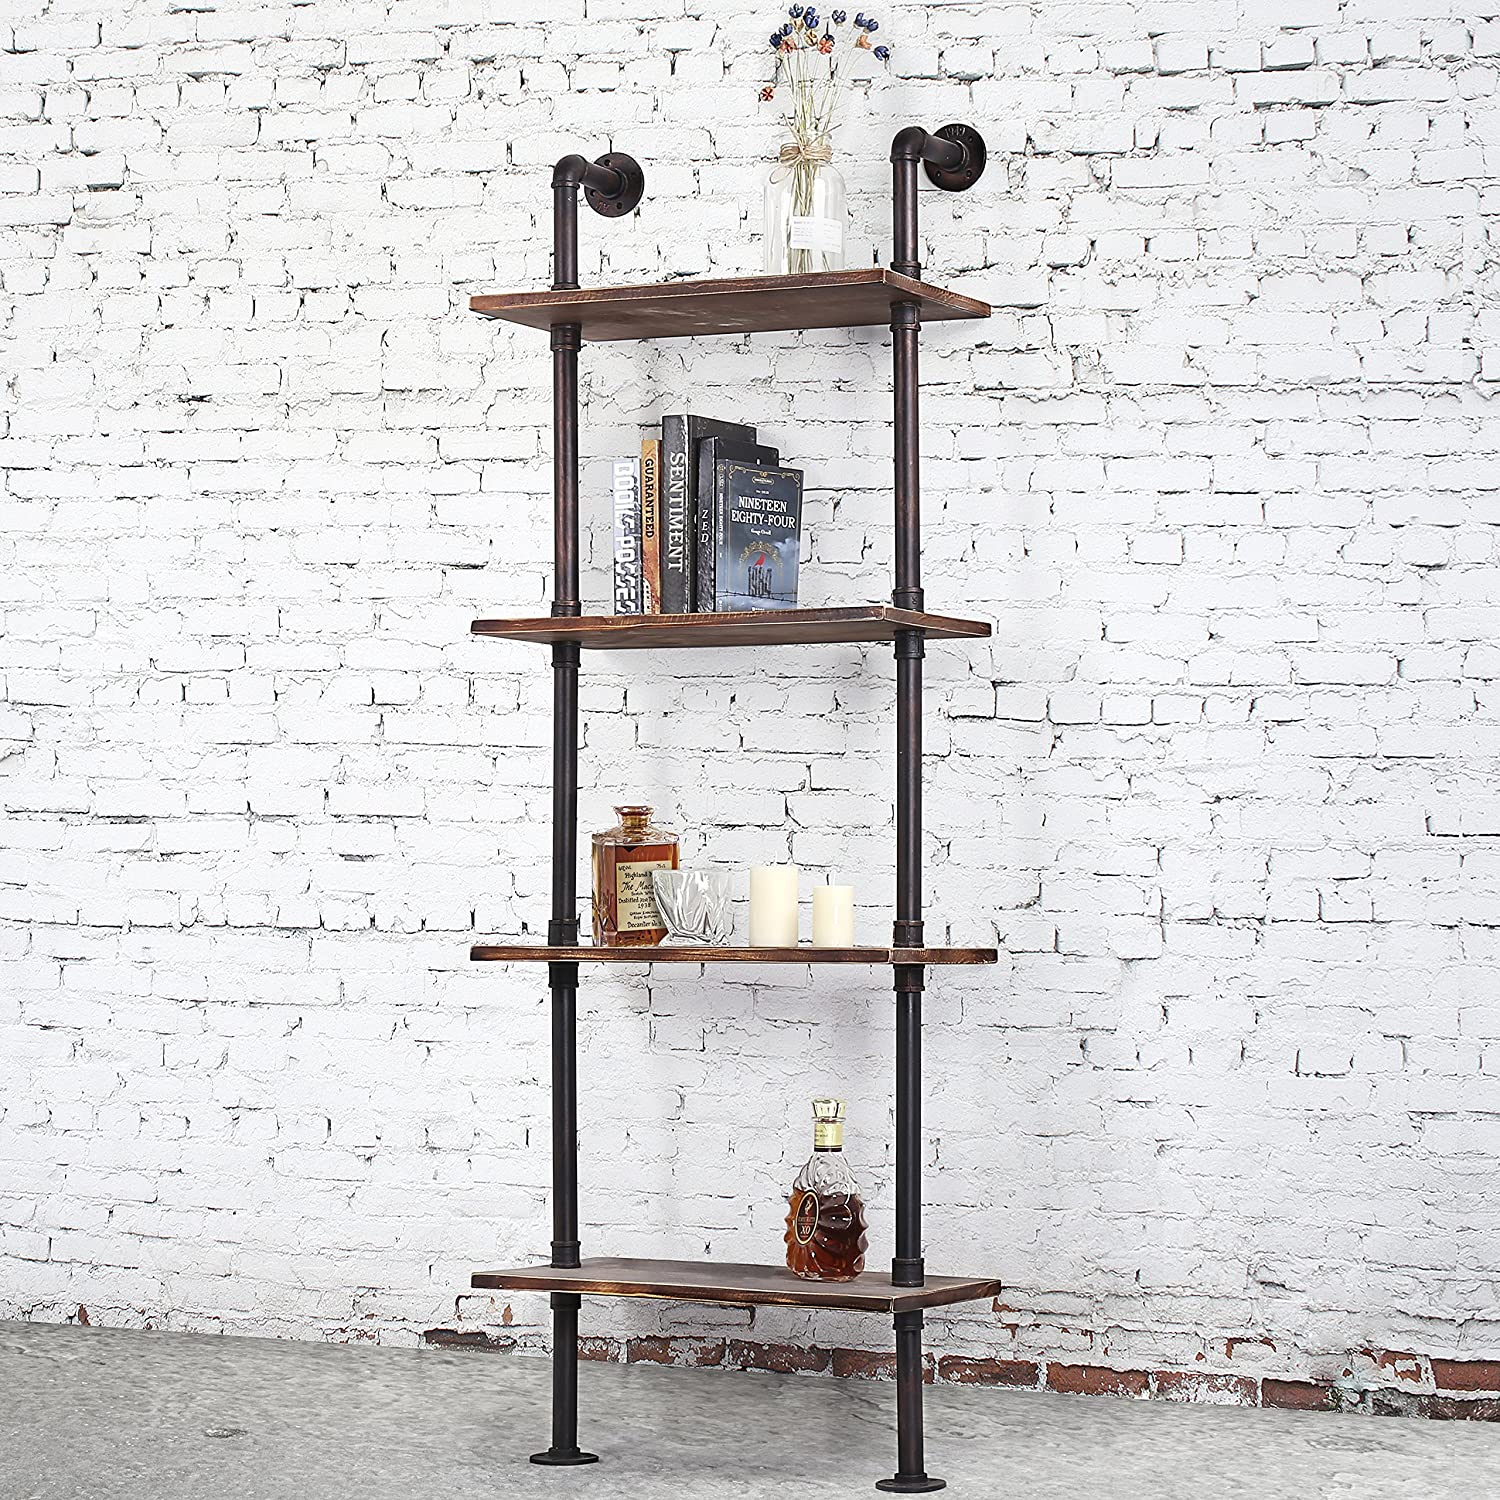 Industrial-Style 4-Tier Leaning Shelf, Ladder Bookshelf with Metal Pipe & Rustic Wood Shelving